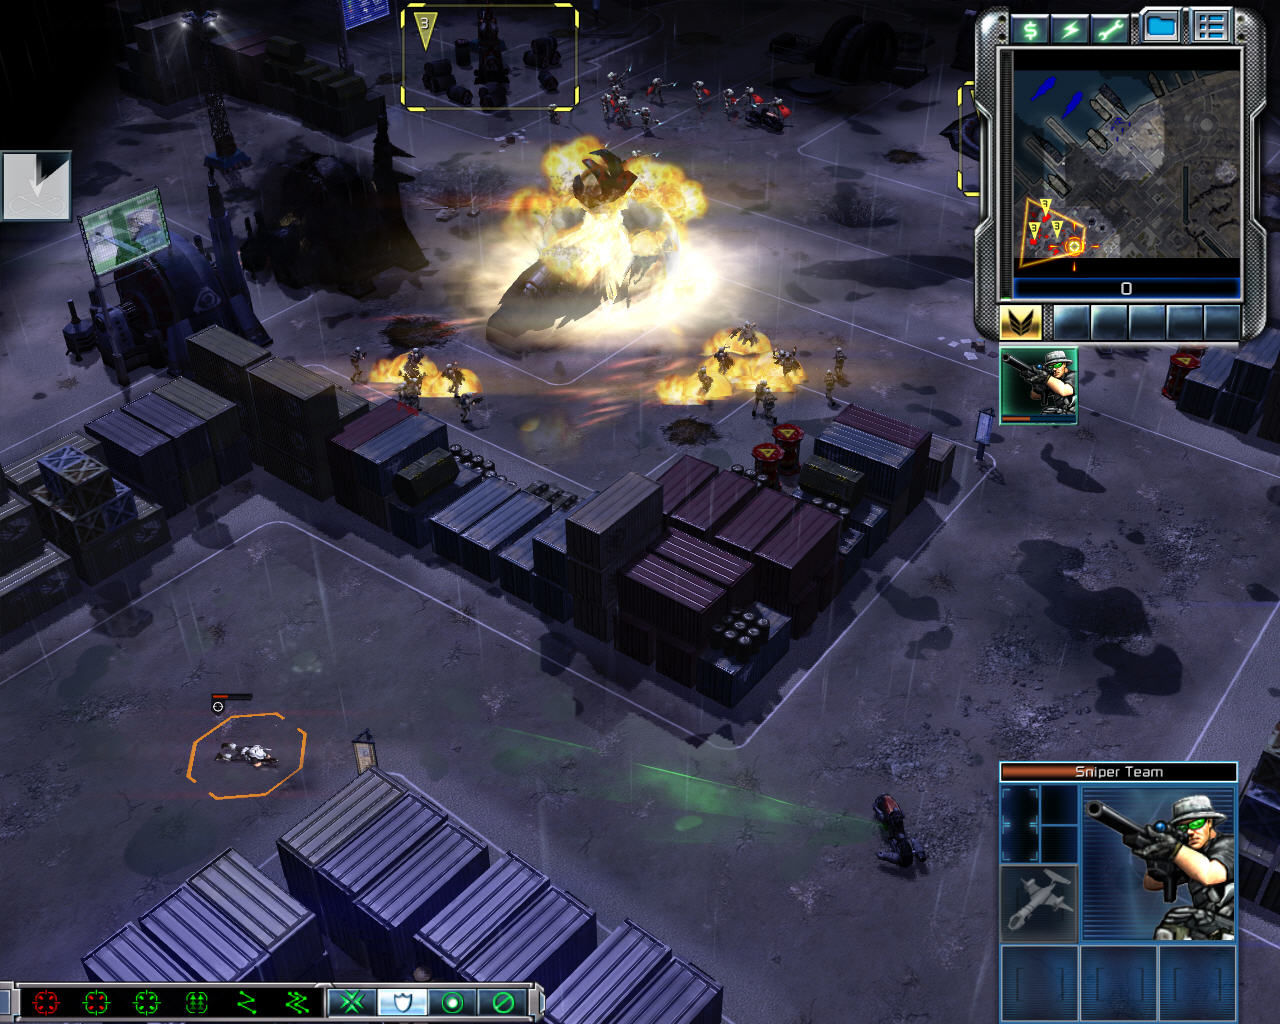 Command & Conquer 3: Tiberium Wars Windows The GDI Snipers can designate targets for long range bombardment from artillery pieces.